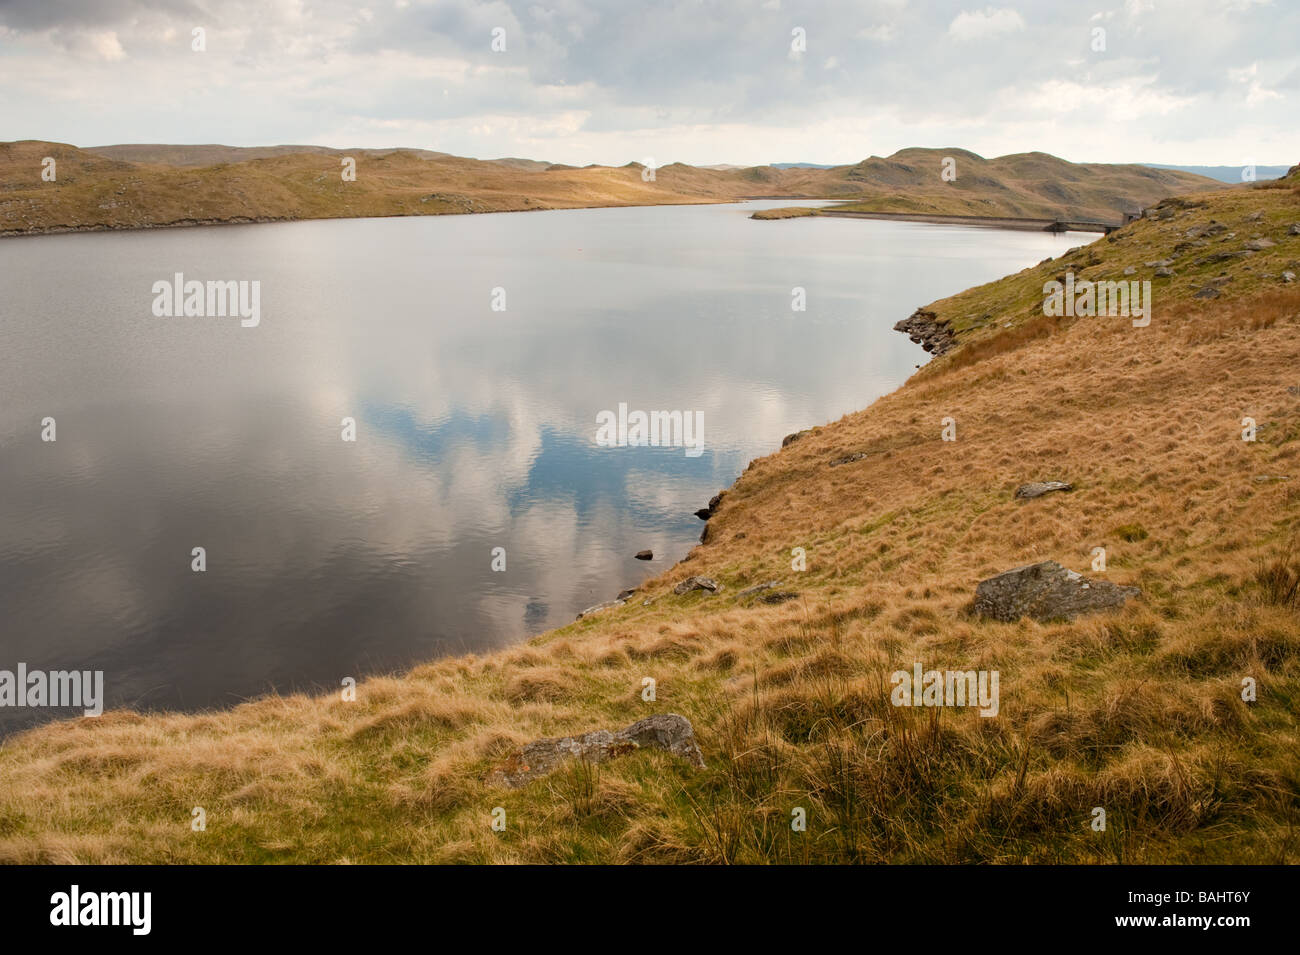 Reflections of clouds in Llyn Teifi Lake in remote upland Ceredigion Wales UK Stock Photo